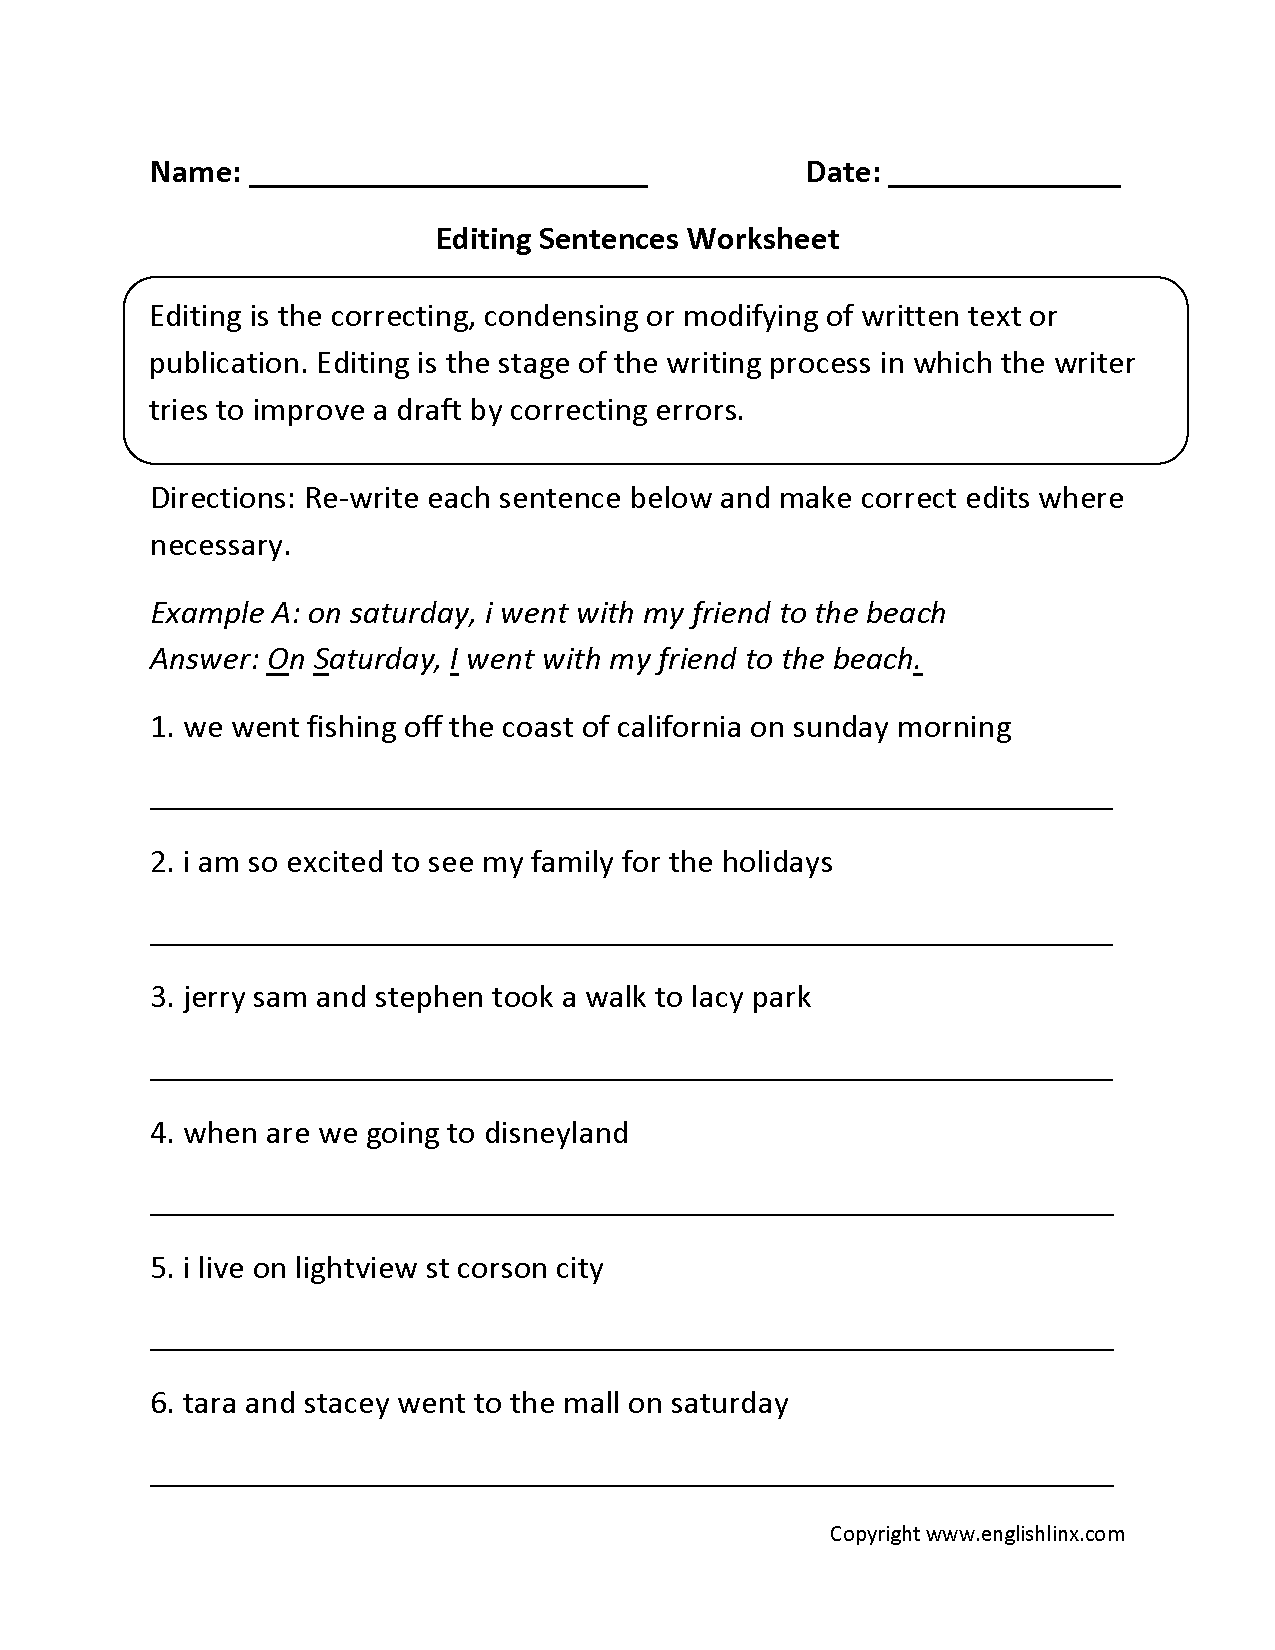 Worksheets Spelling Worksheets For 6th Grade writing worksheets editing worksheets